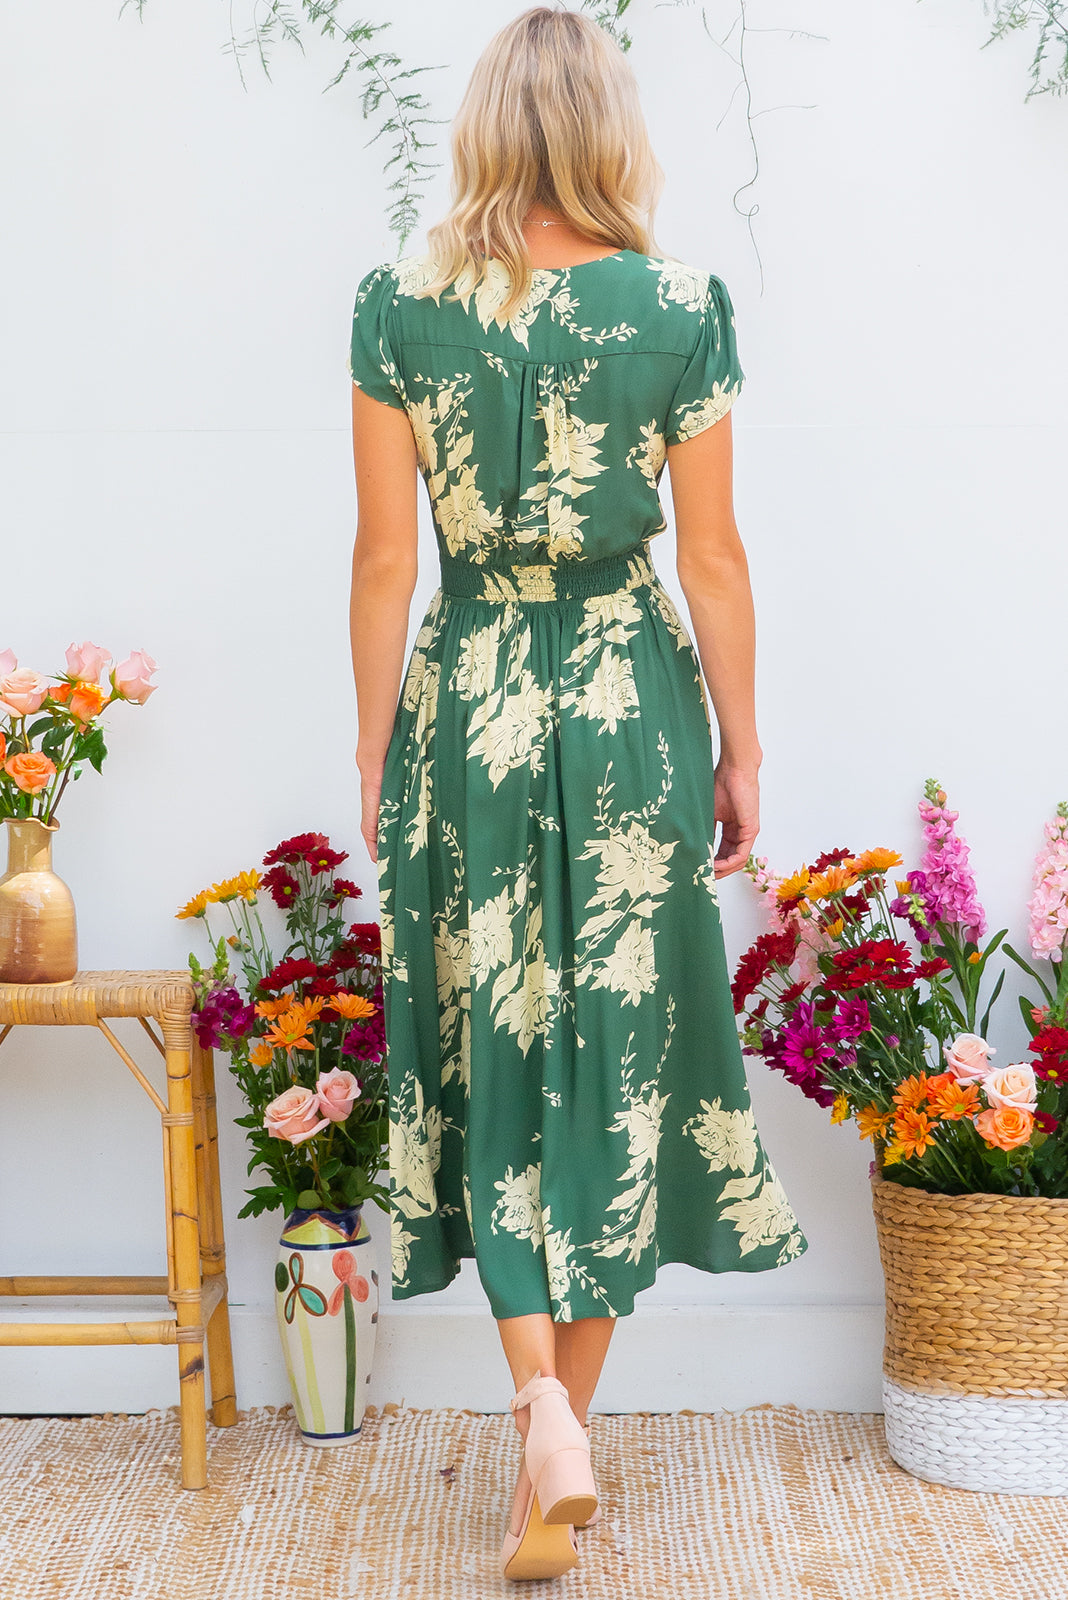 Lizzie Green Garden Dress, fitted bust midi dress in soft green floral print comes in plus sizes